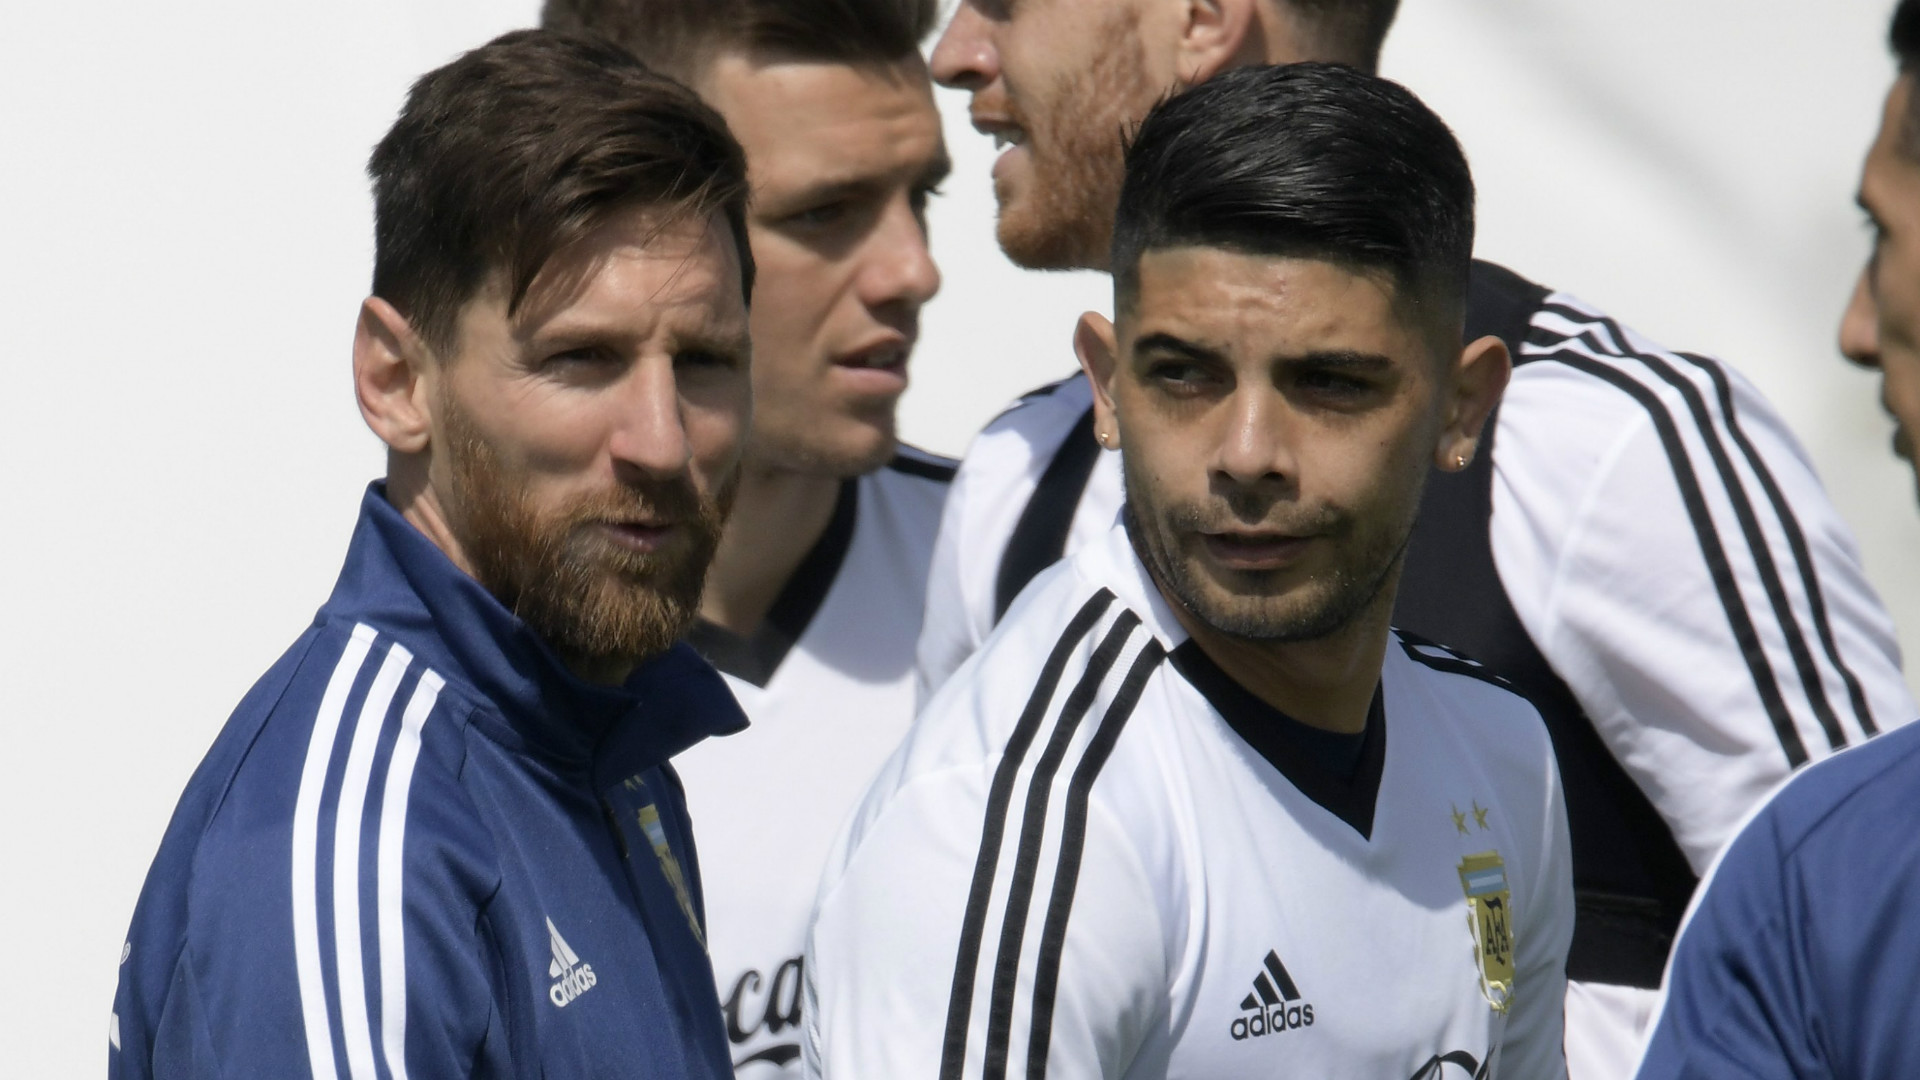 'He's never changed' - Banega insists Messi is the same as he was as a child